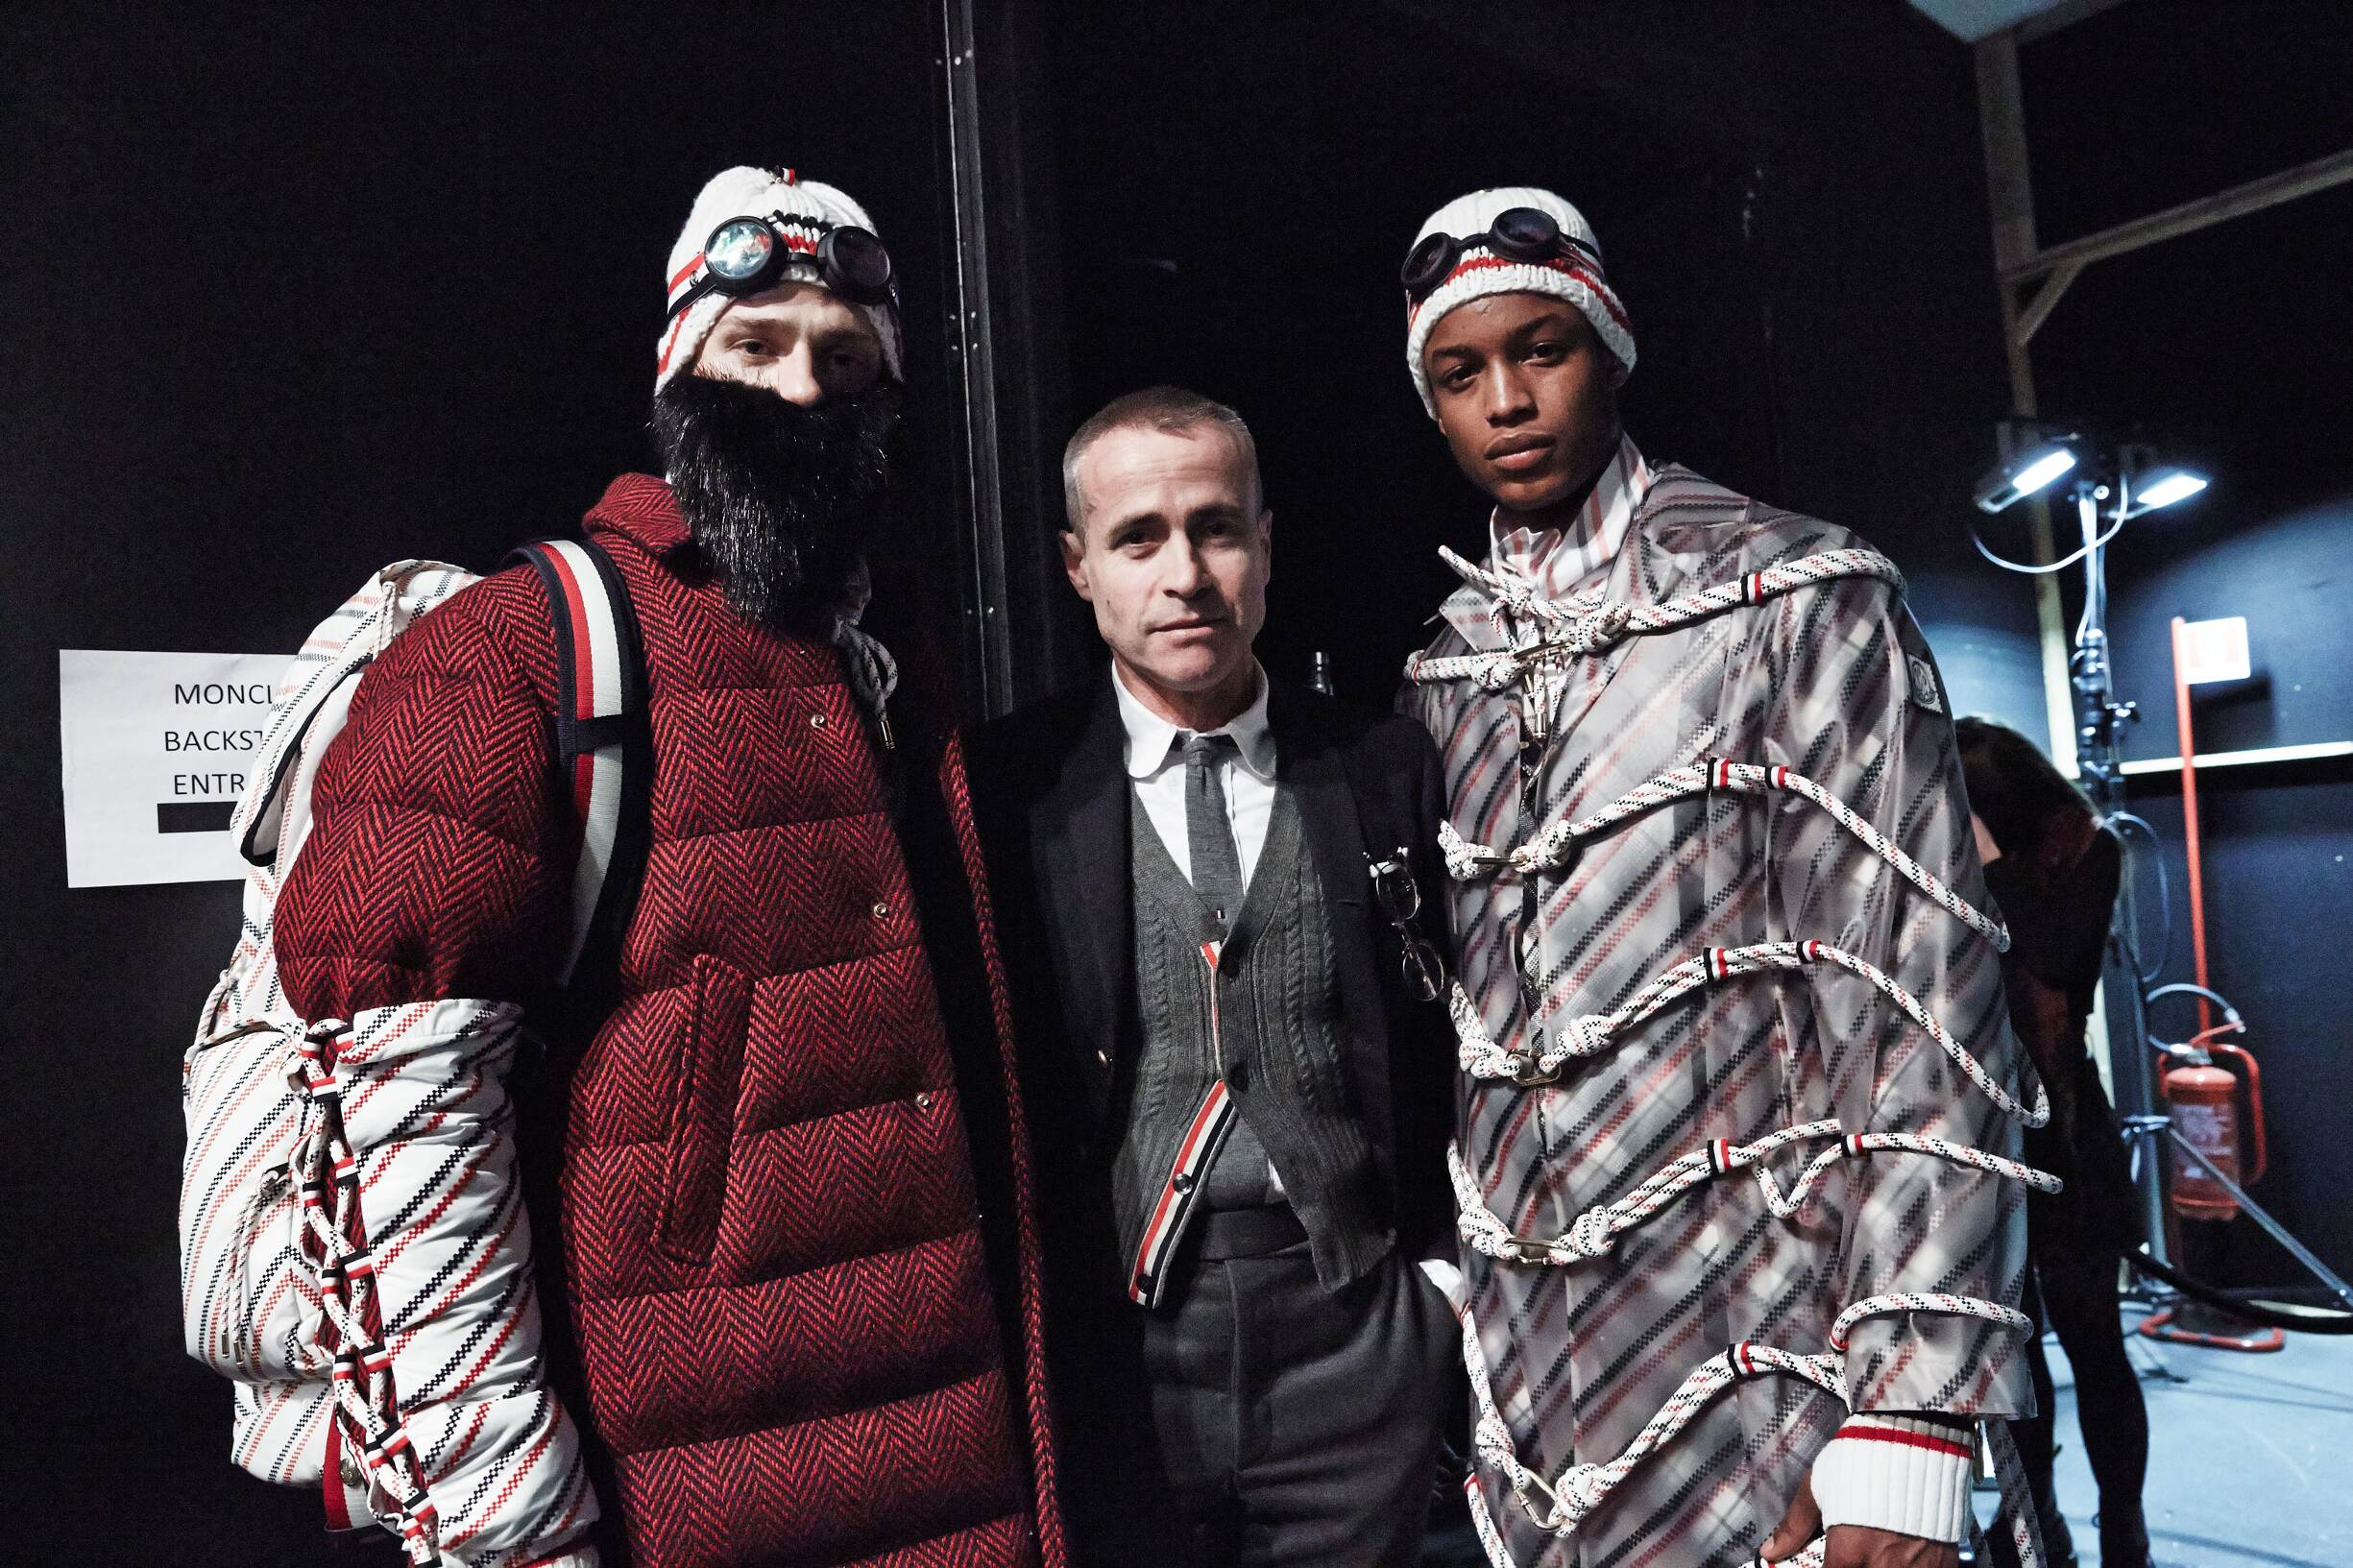 Fashion Moncler Gamme Bleu Models and Thom Browne Backstage